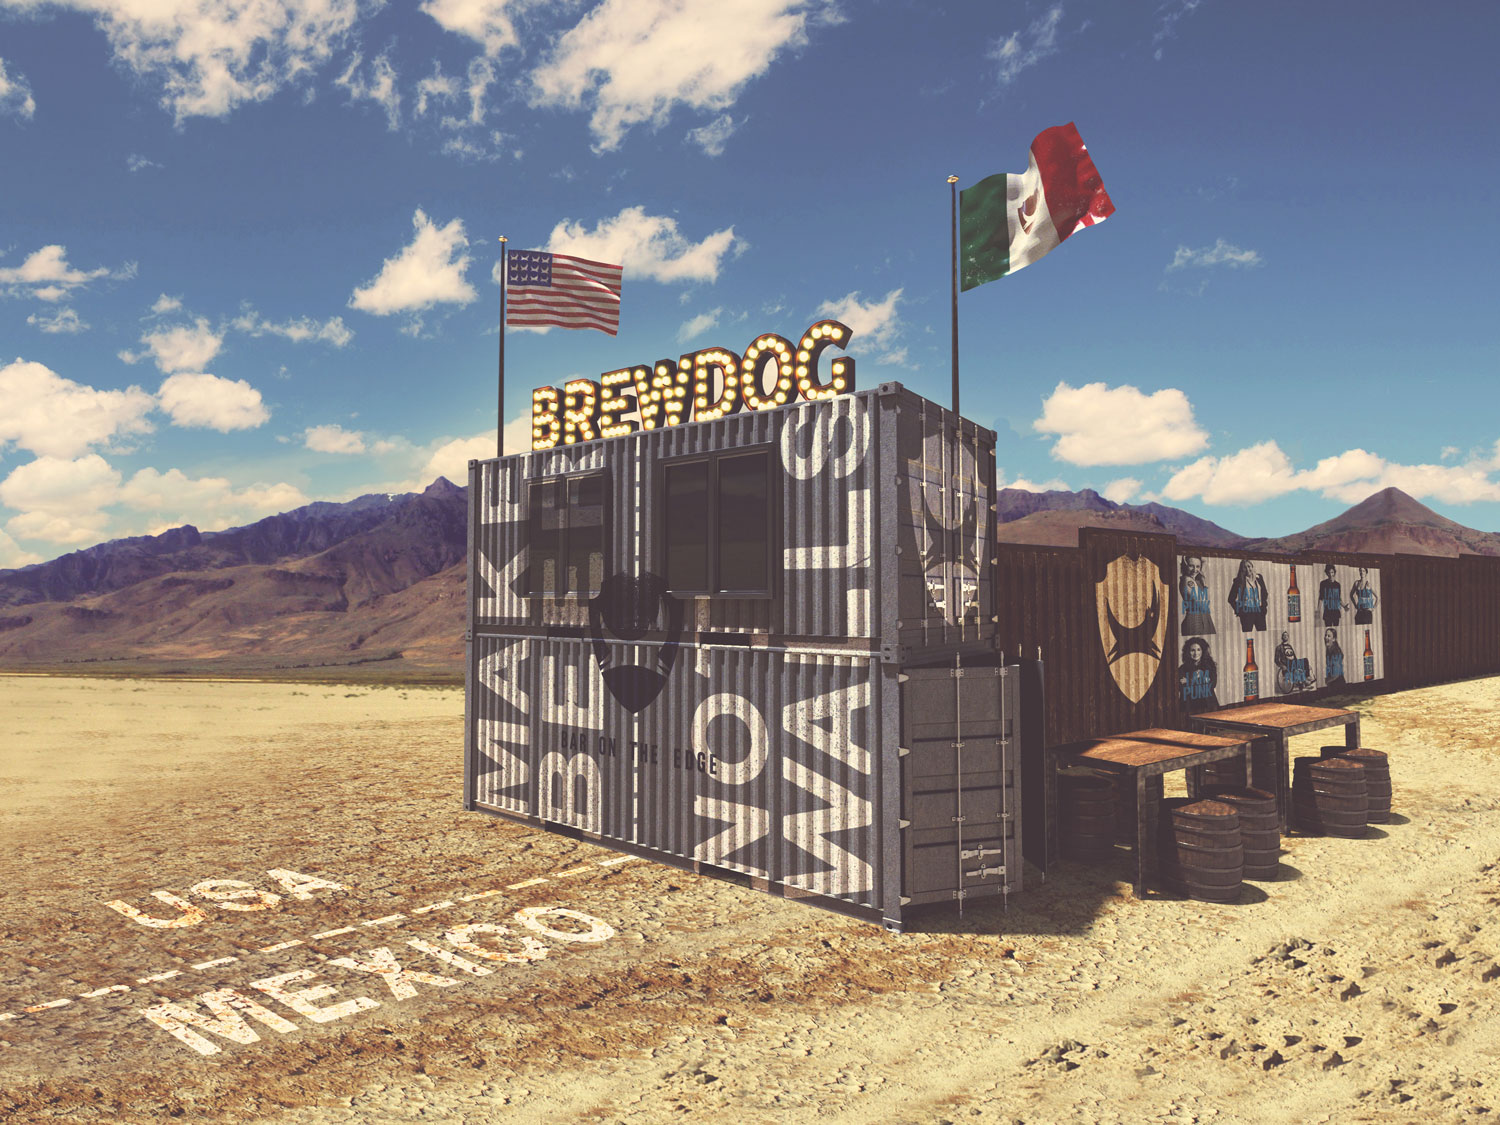 brewdg-border-bar-FT-BLOG0817.jpg